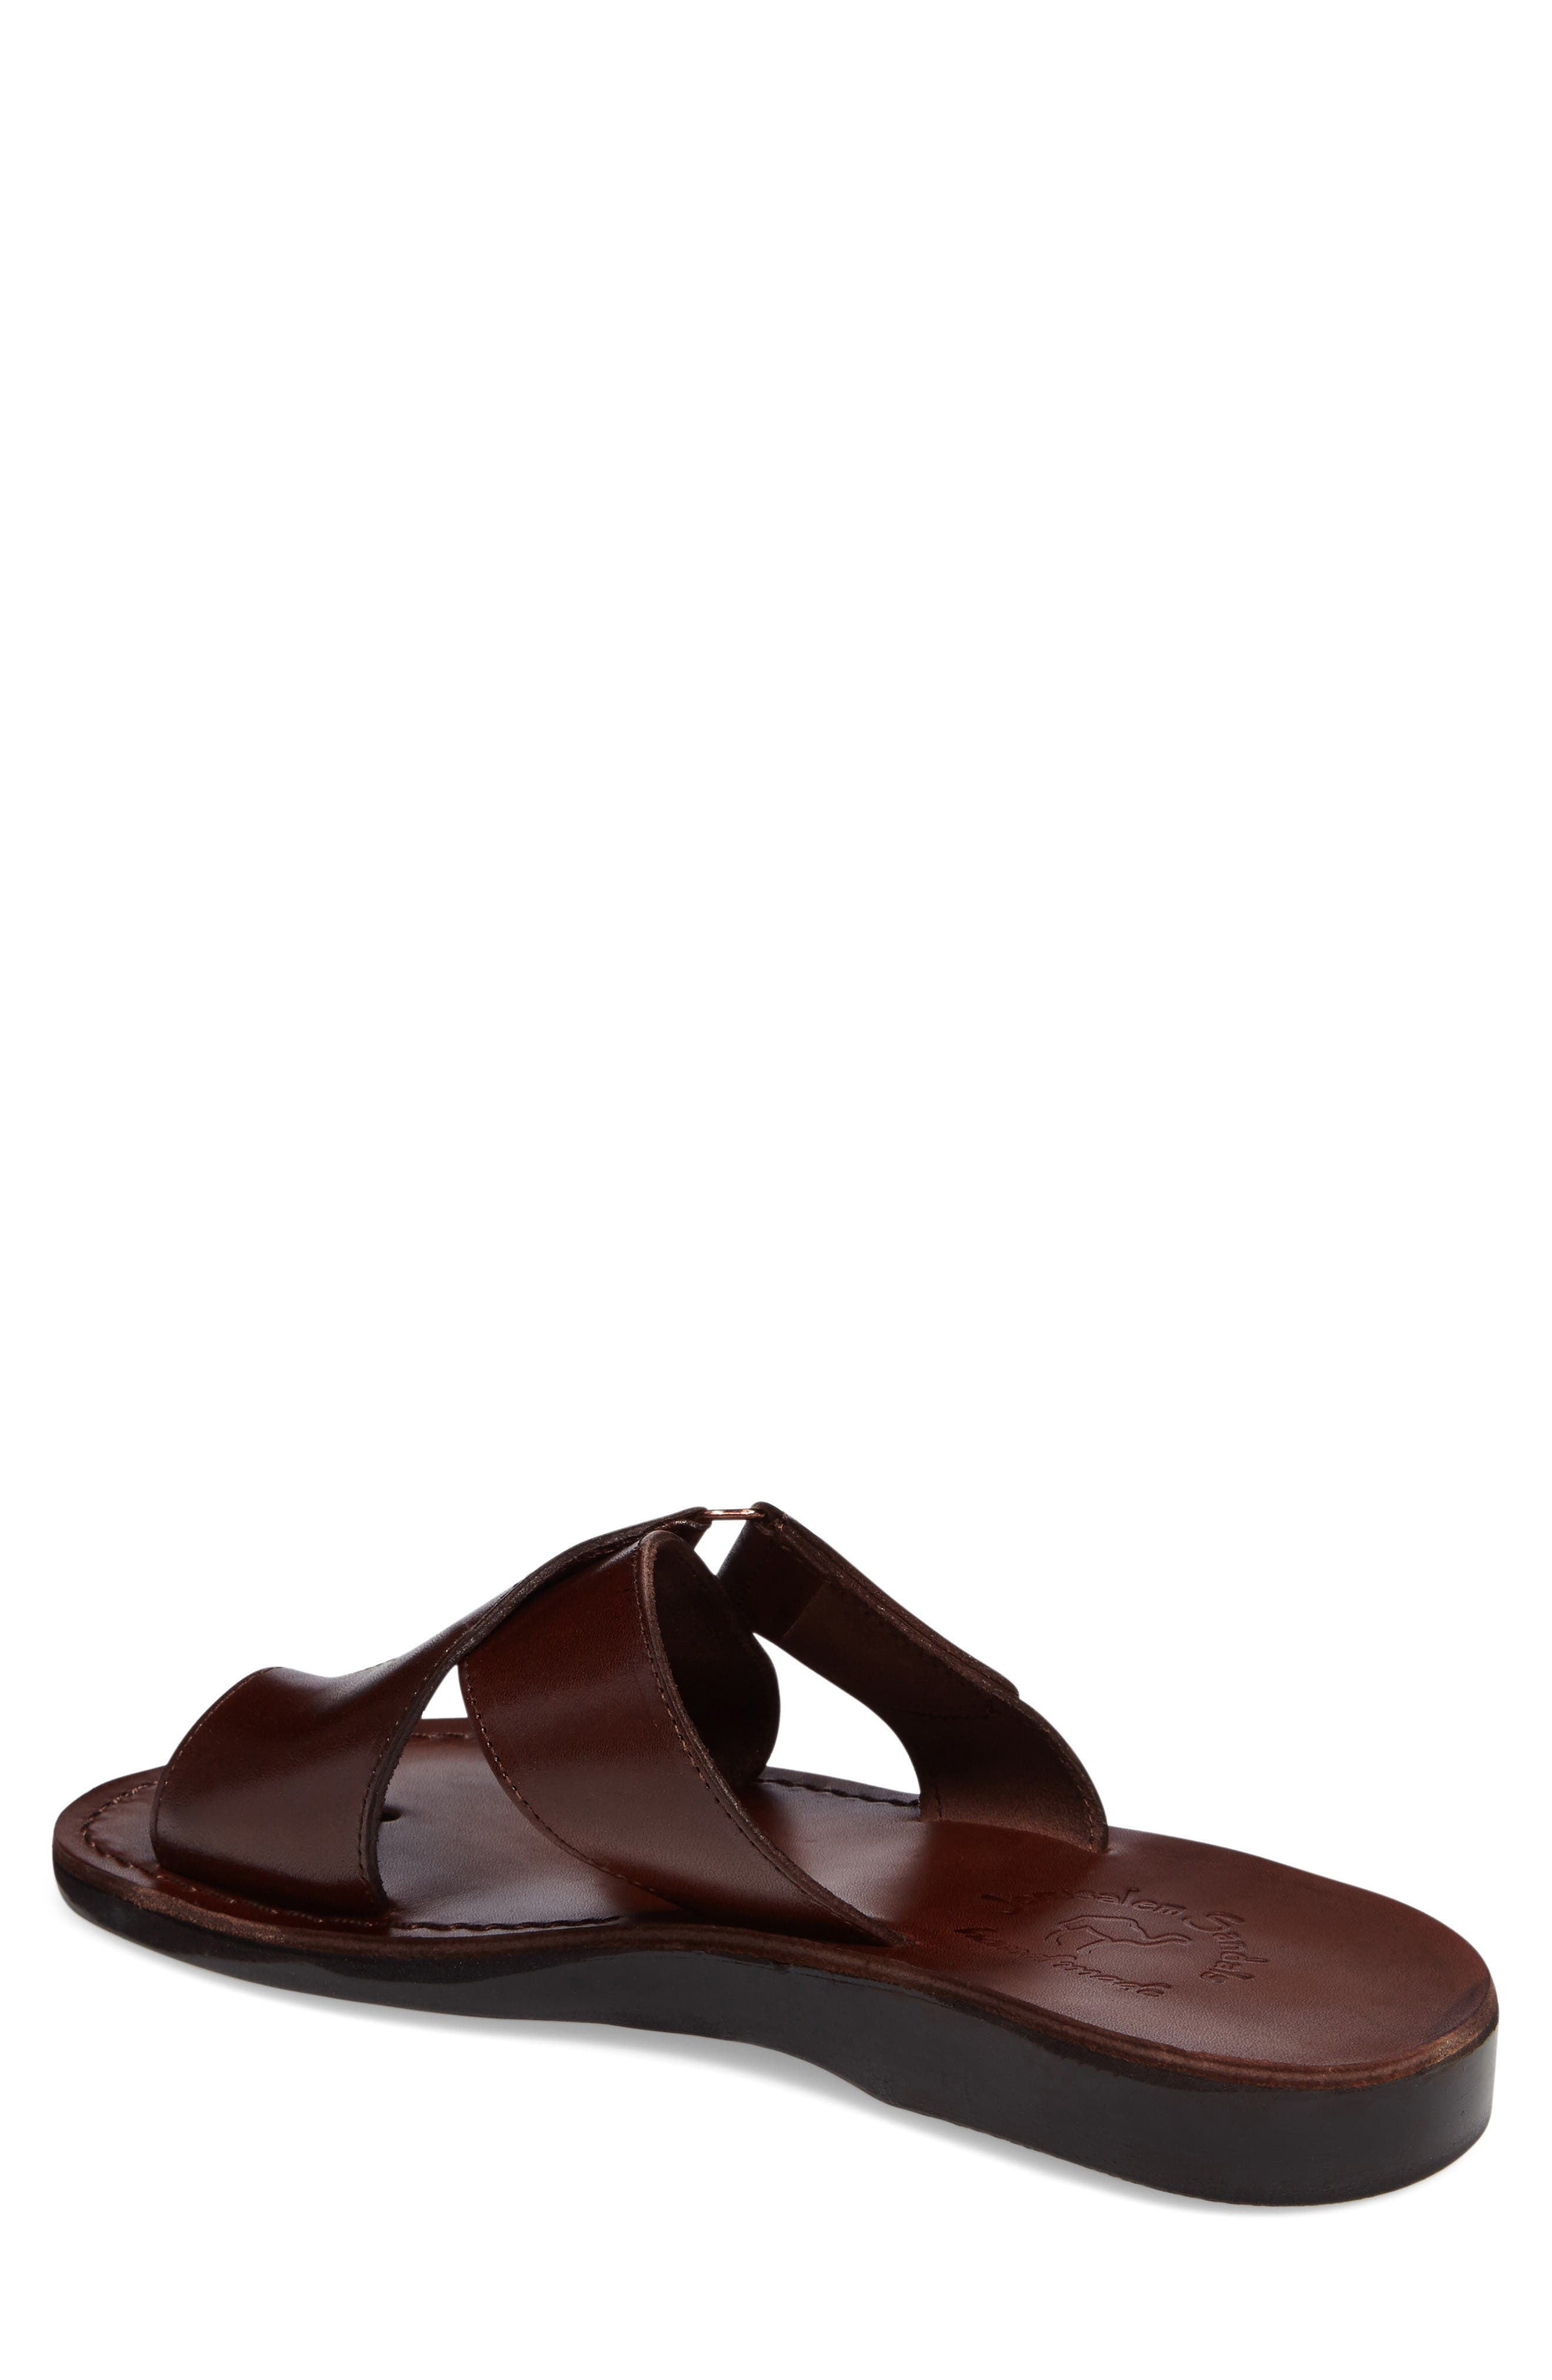 Asher Slide Sandal,                             Alternate thumbnail 2, color,                             Brown Leather